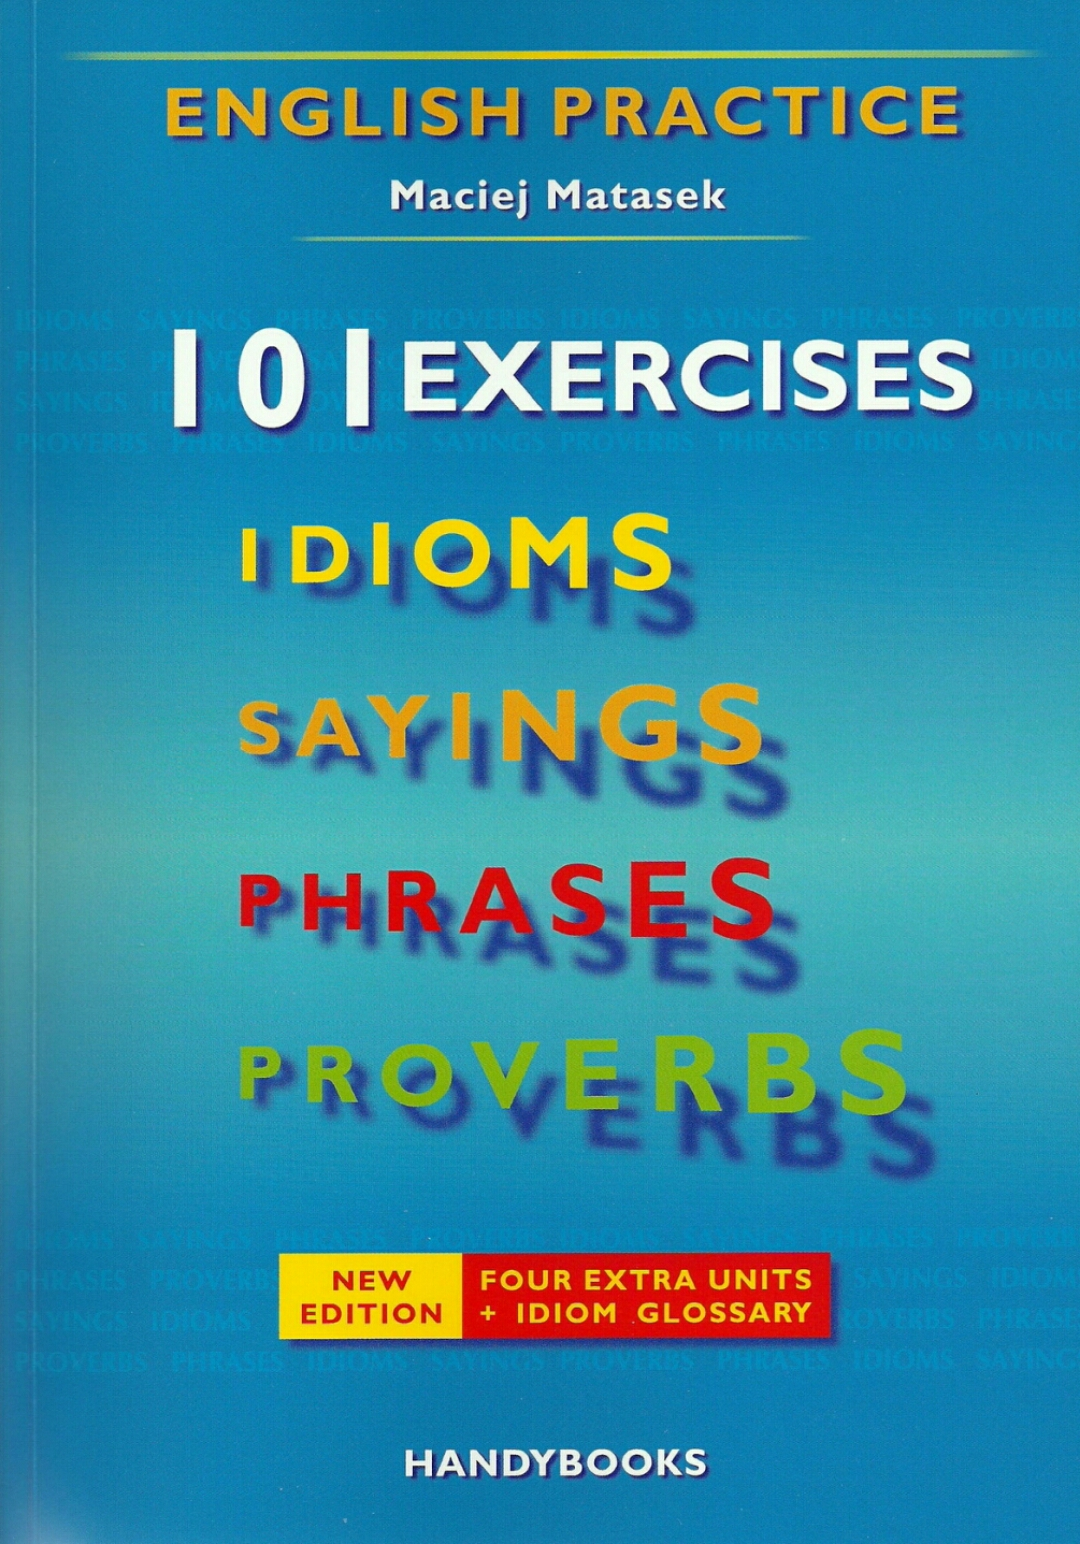 Download 101 Exercises Idioms Sayings Phrases Proverbs in